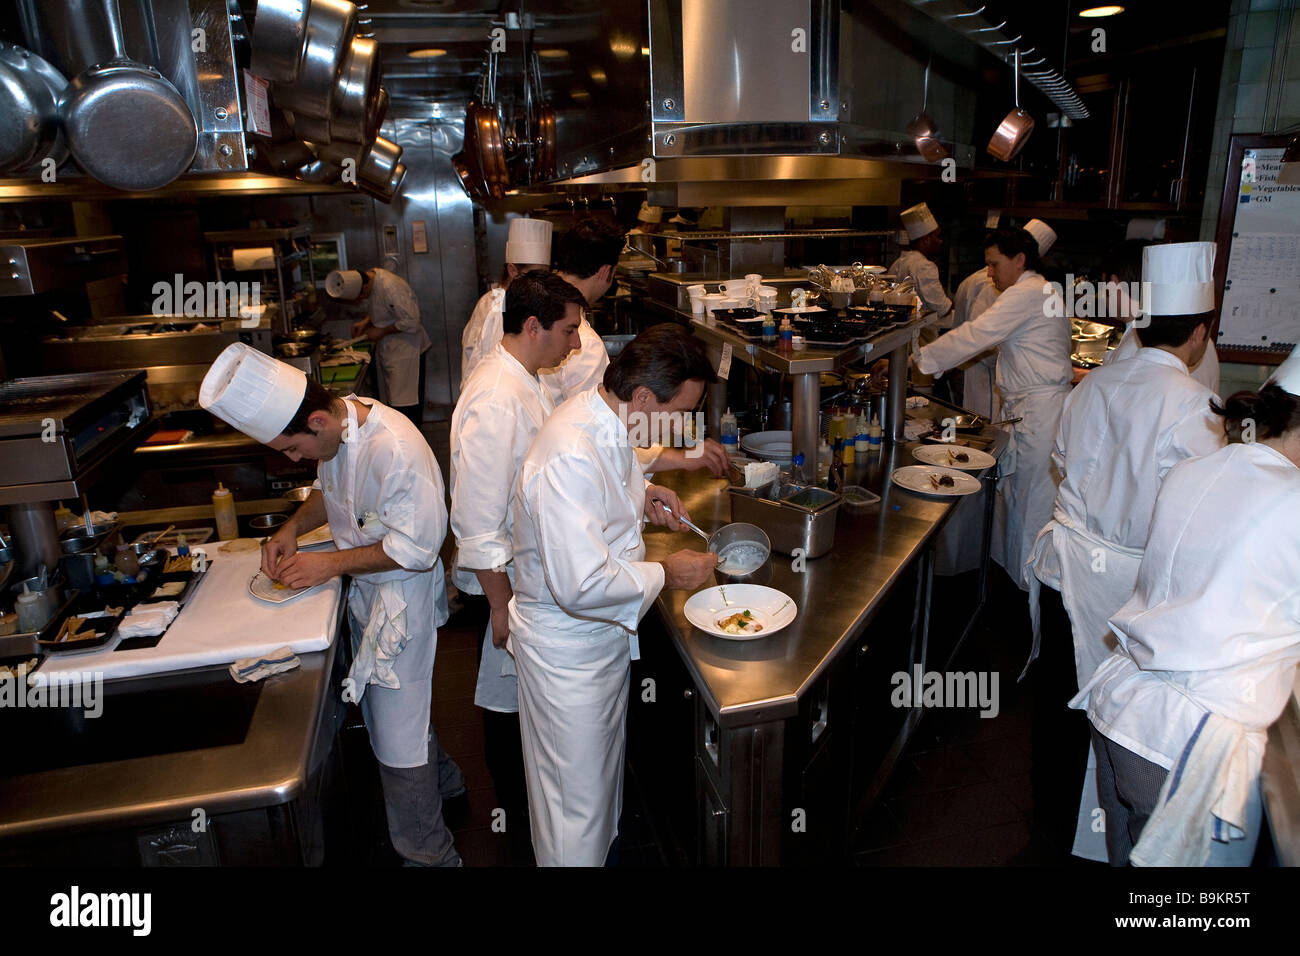 United States, New York City, Manhattan, Most Admired In Town, Restaurant U0027 Danielu0027 Owned By French Chef Daniel Boulud, Kitchen